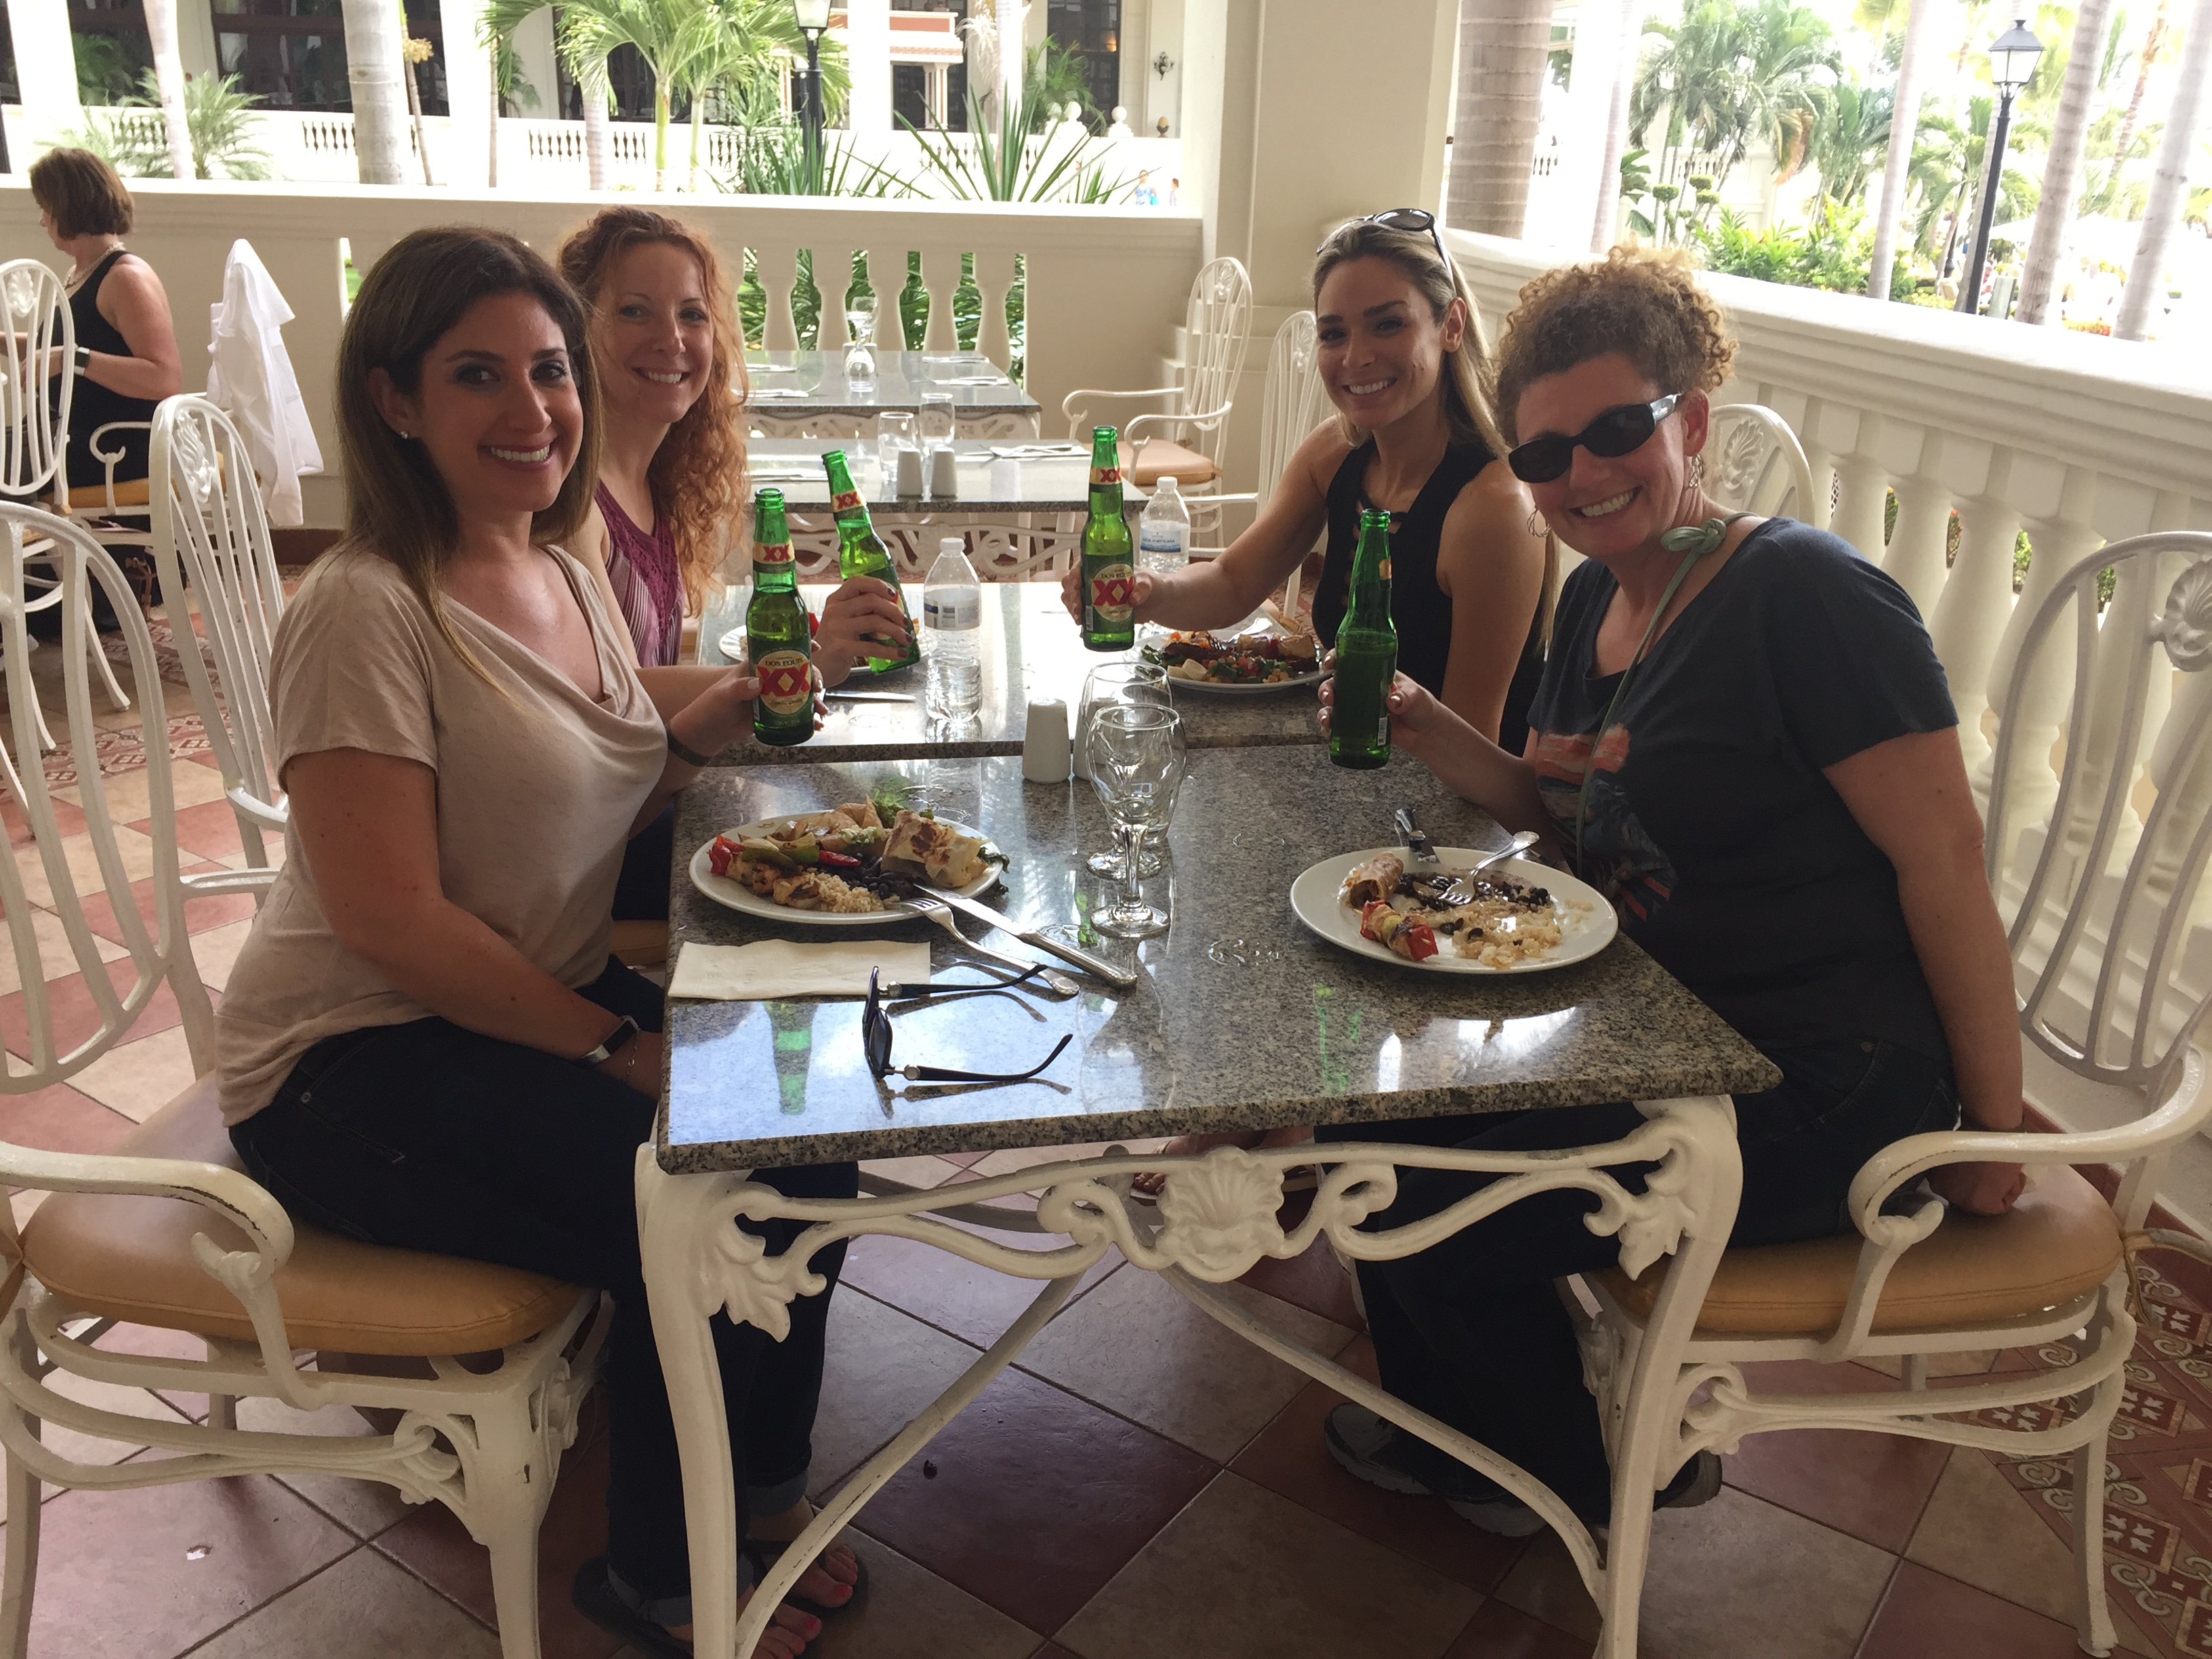 Lunchtime at the Riu Puerto Vallarta